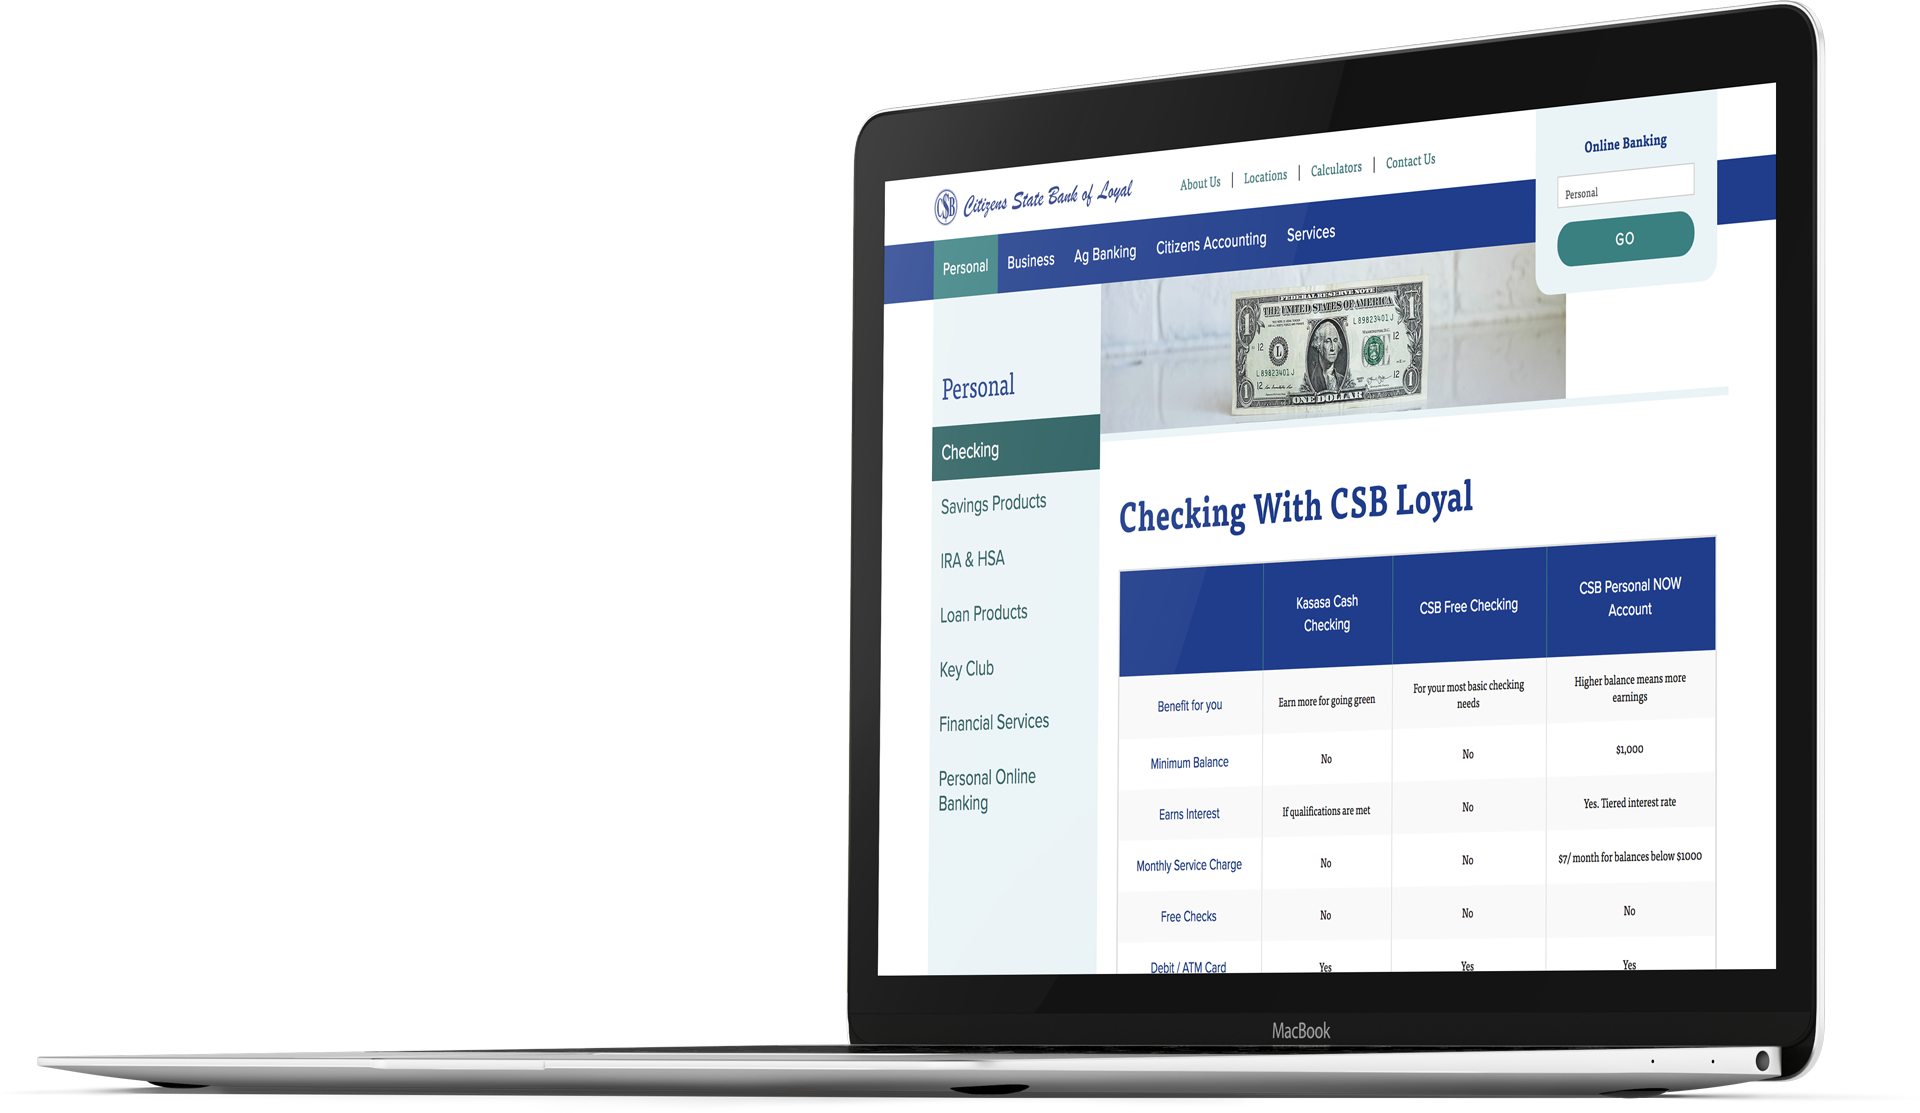 Bank website design for Citizens State Bank of Loyal on a laptop screen